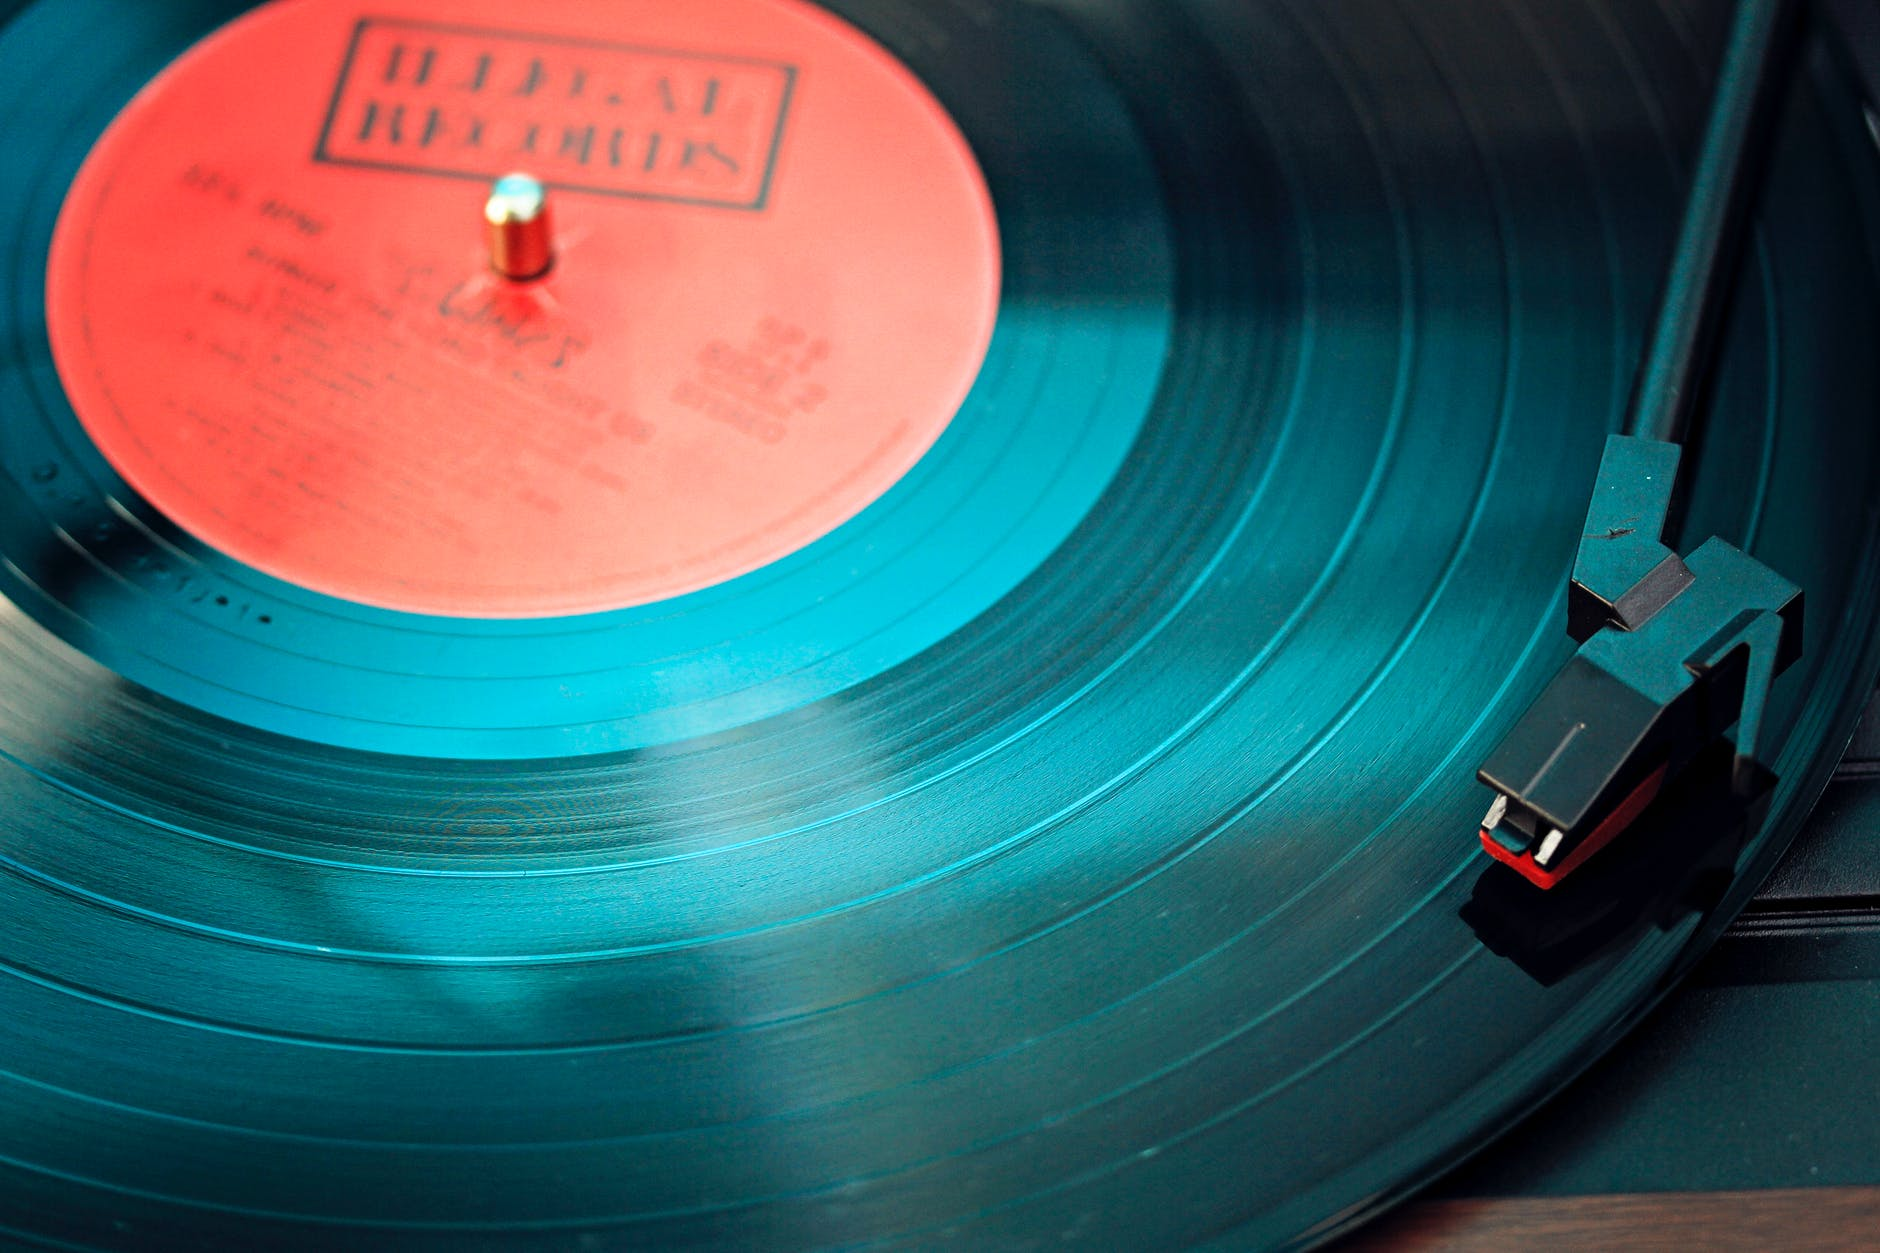 close up of an LP on a record player